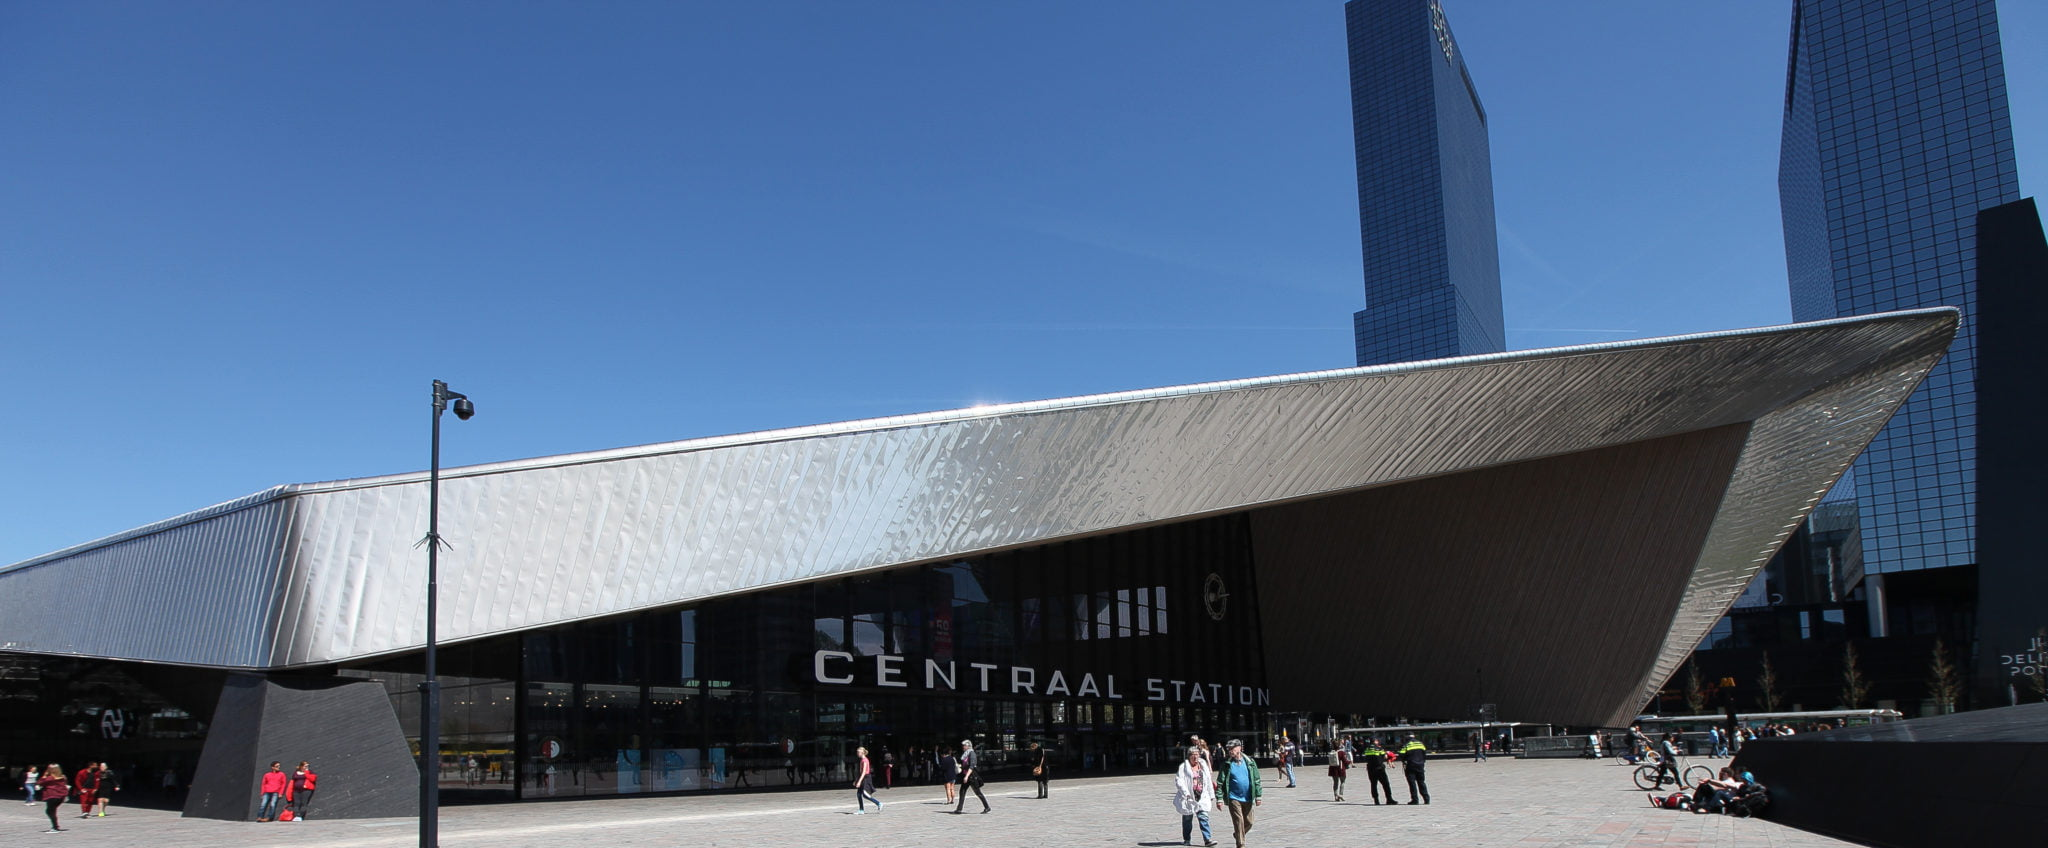 Central Station, designed by Benthem and Crowed